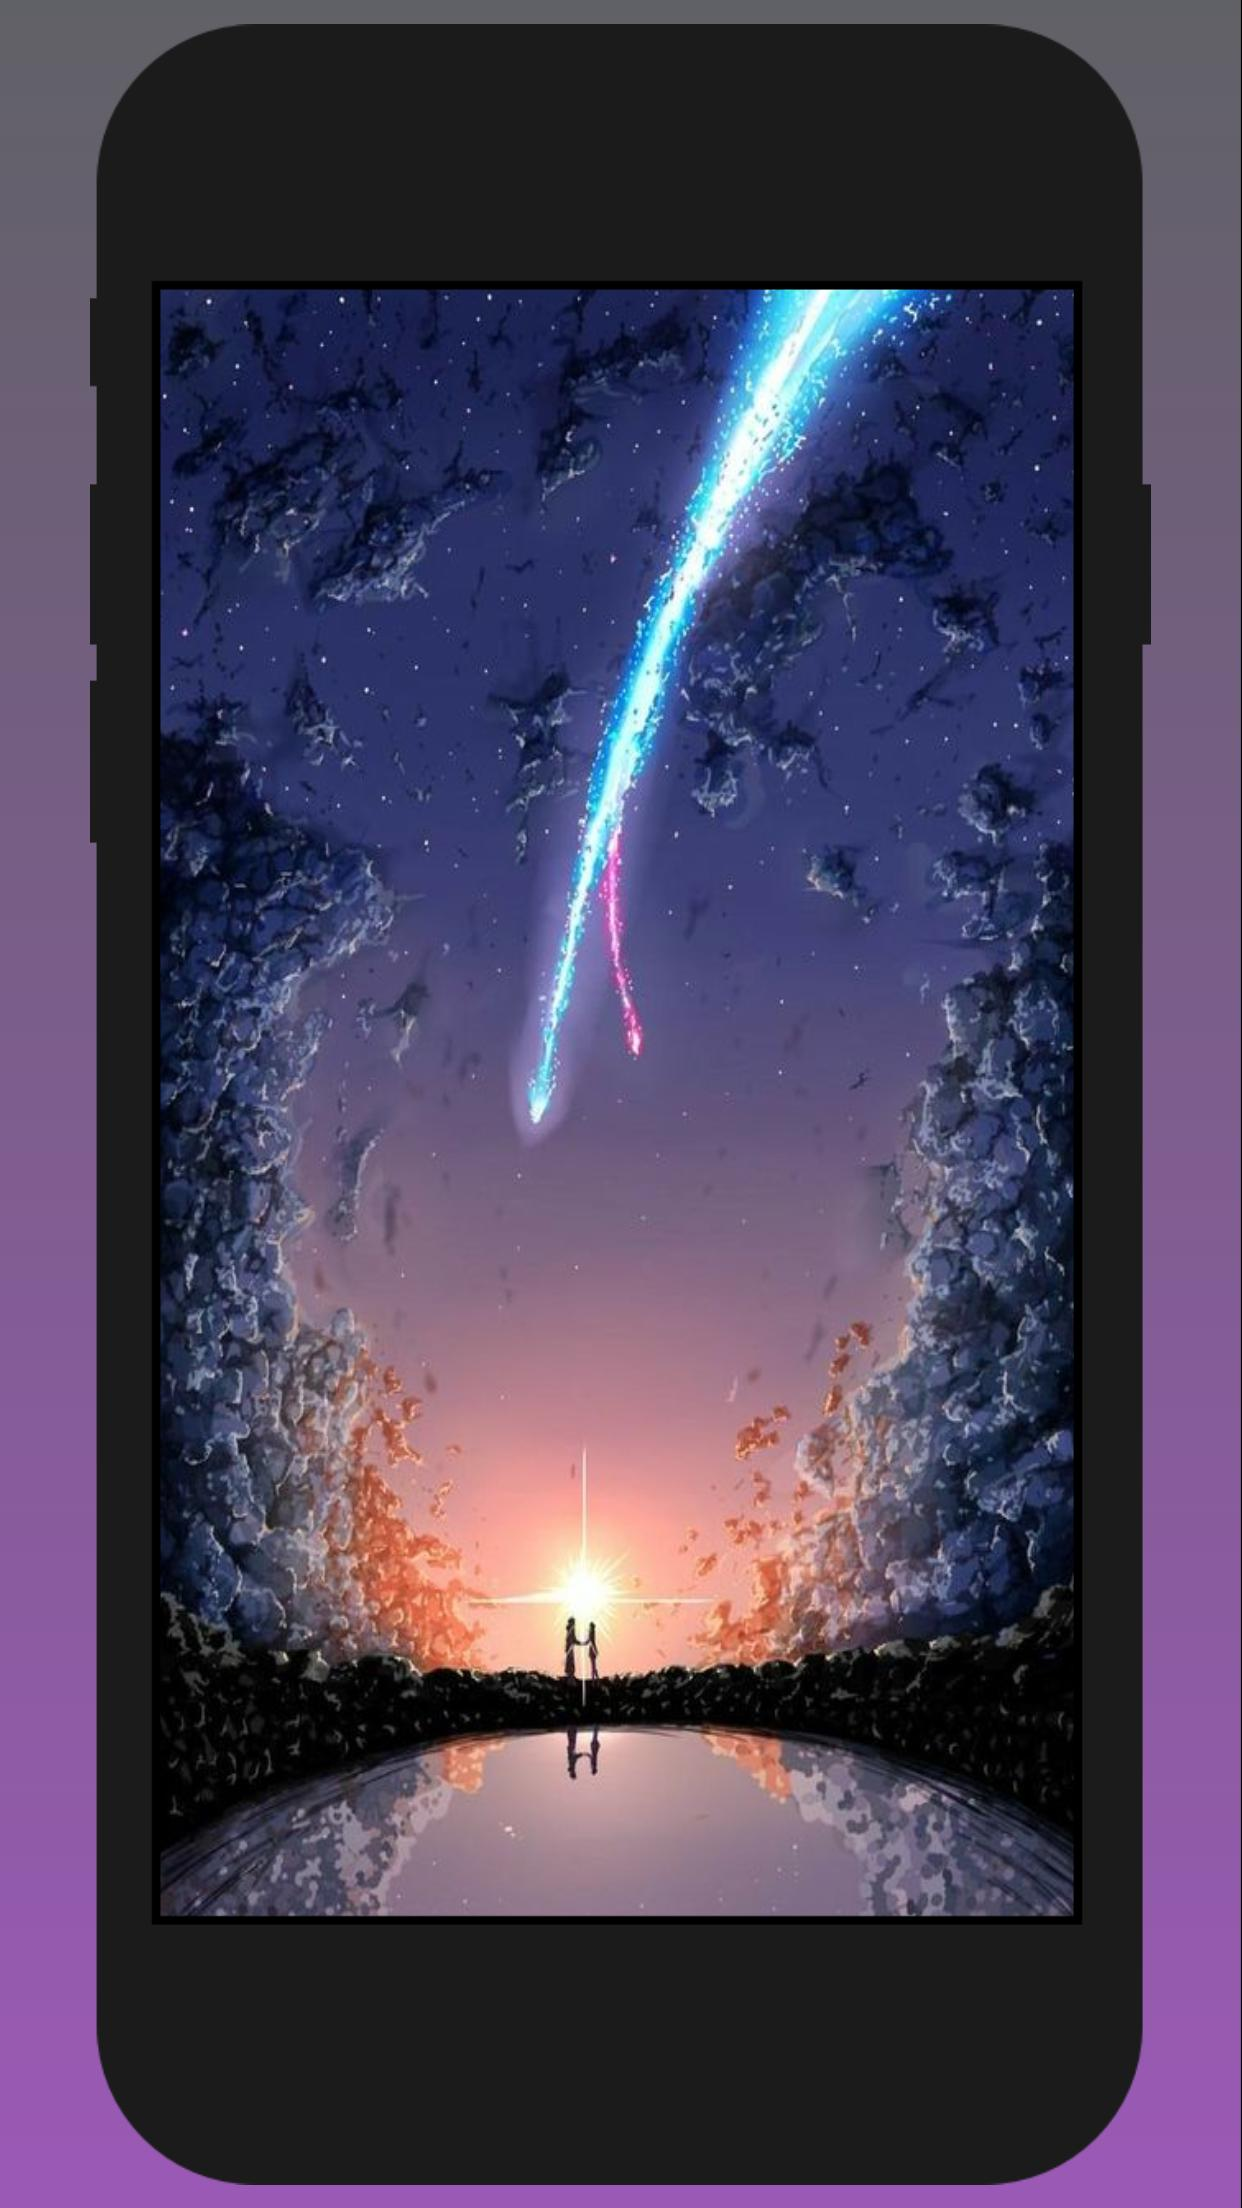 Sad Anime Wallpaper Hd For Android Apk Download